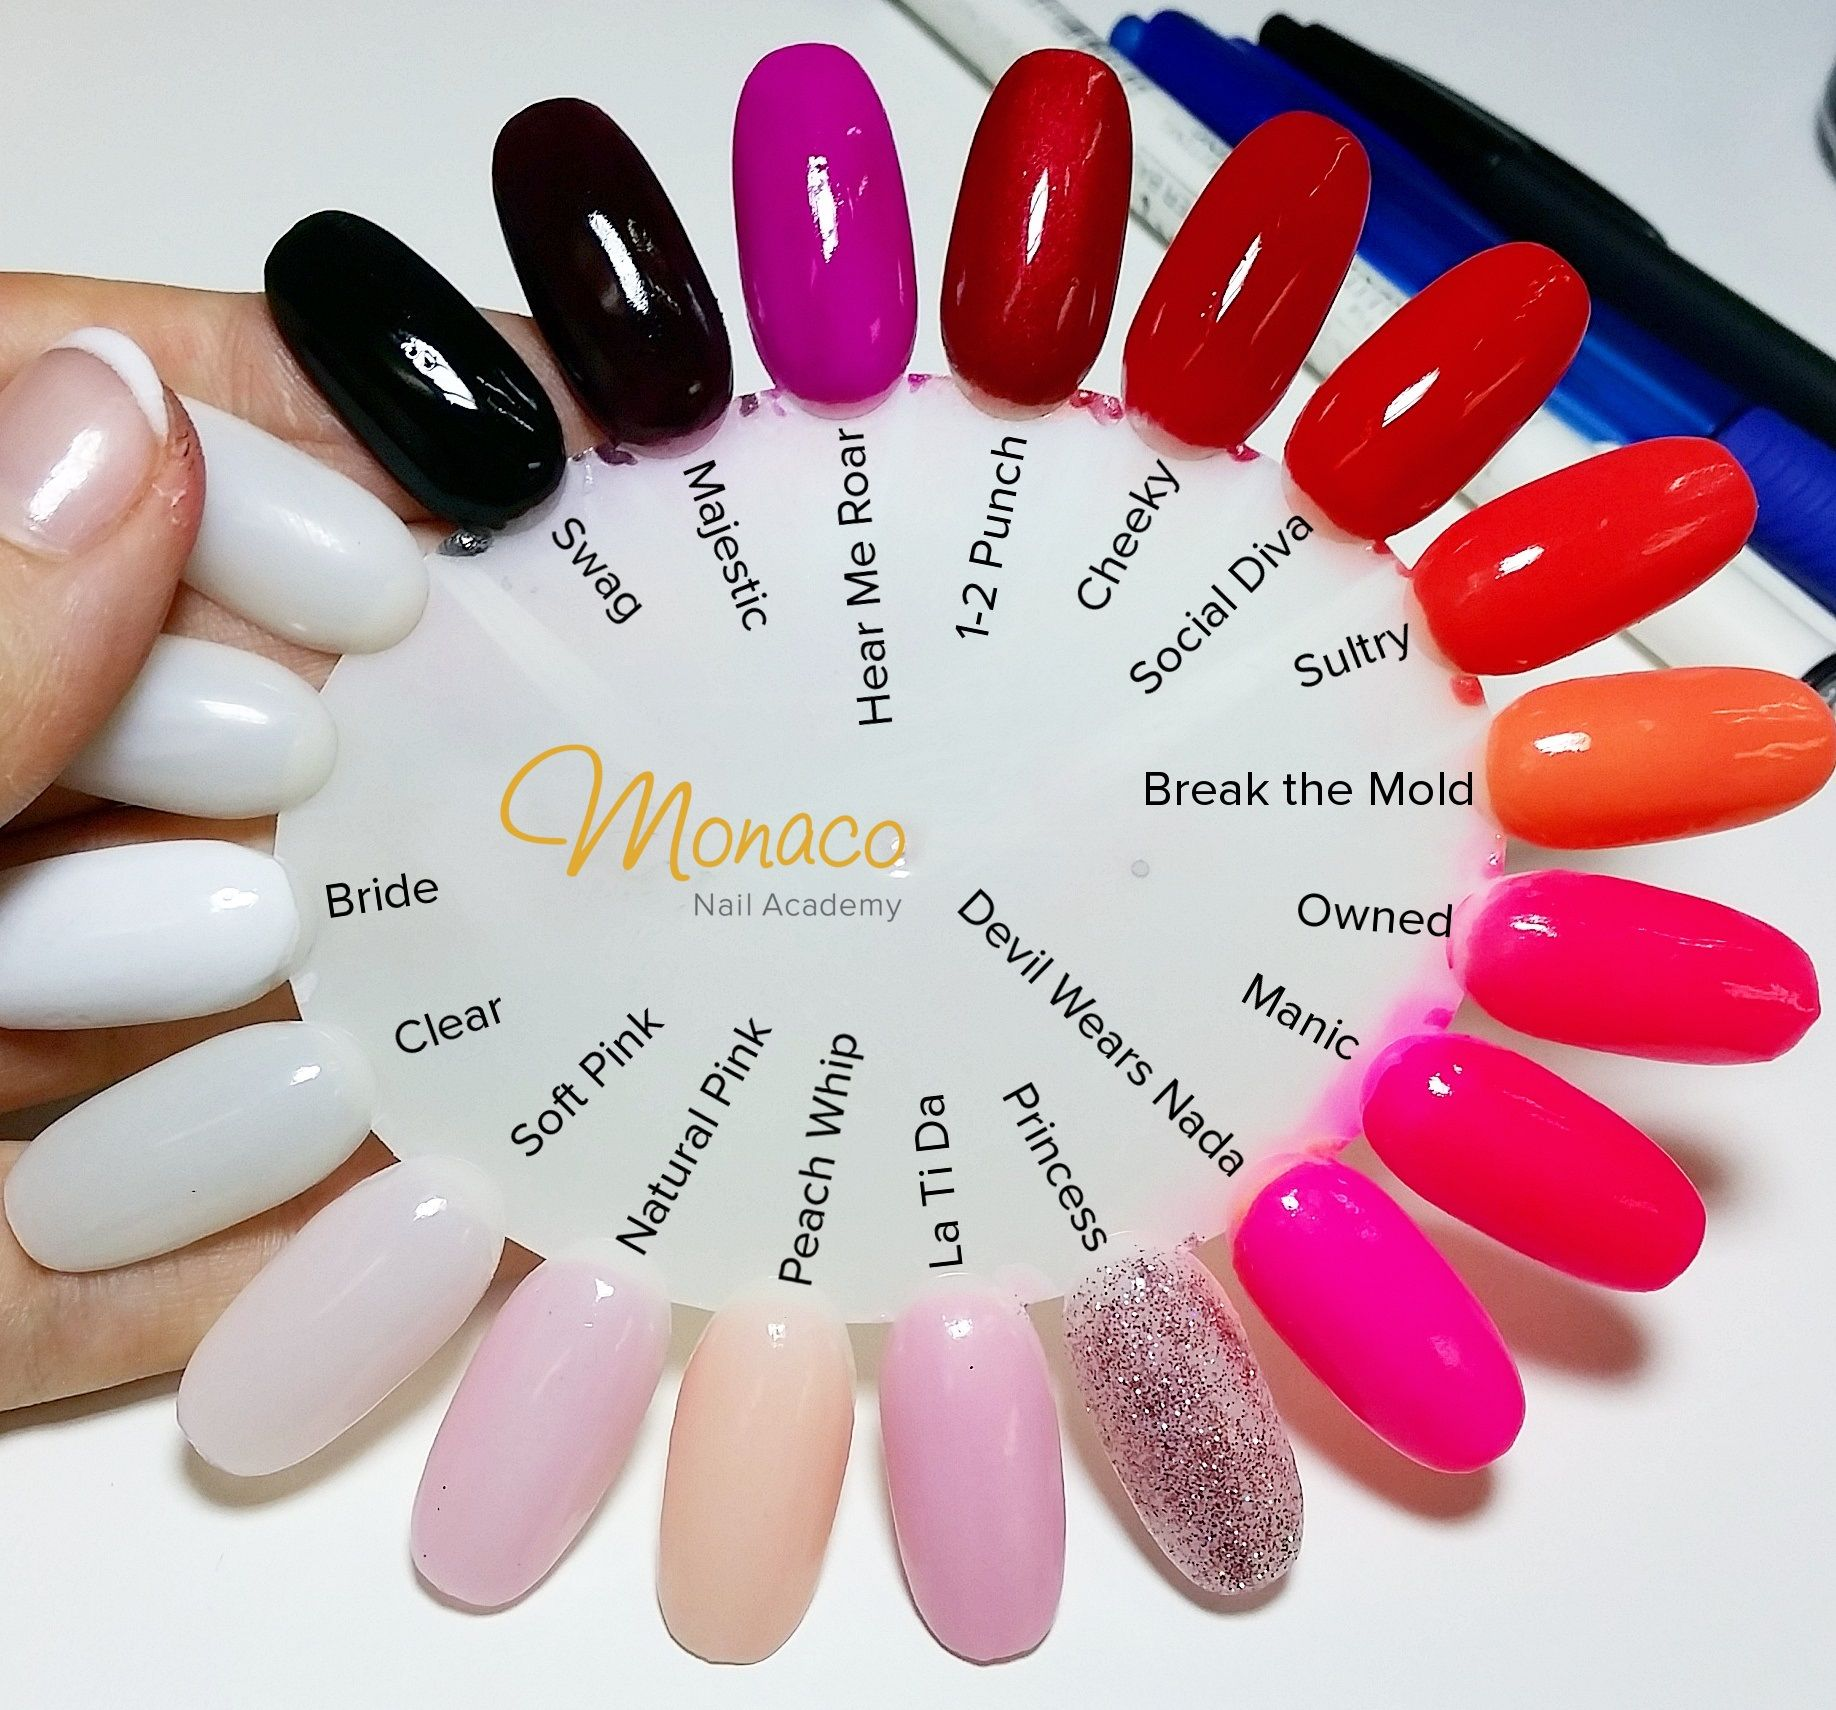 ed4ec76266 Artistic Perfect Dip, via Monacopro.co.nz | Dip Nails Color Swatches ...